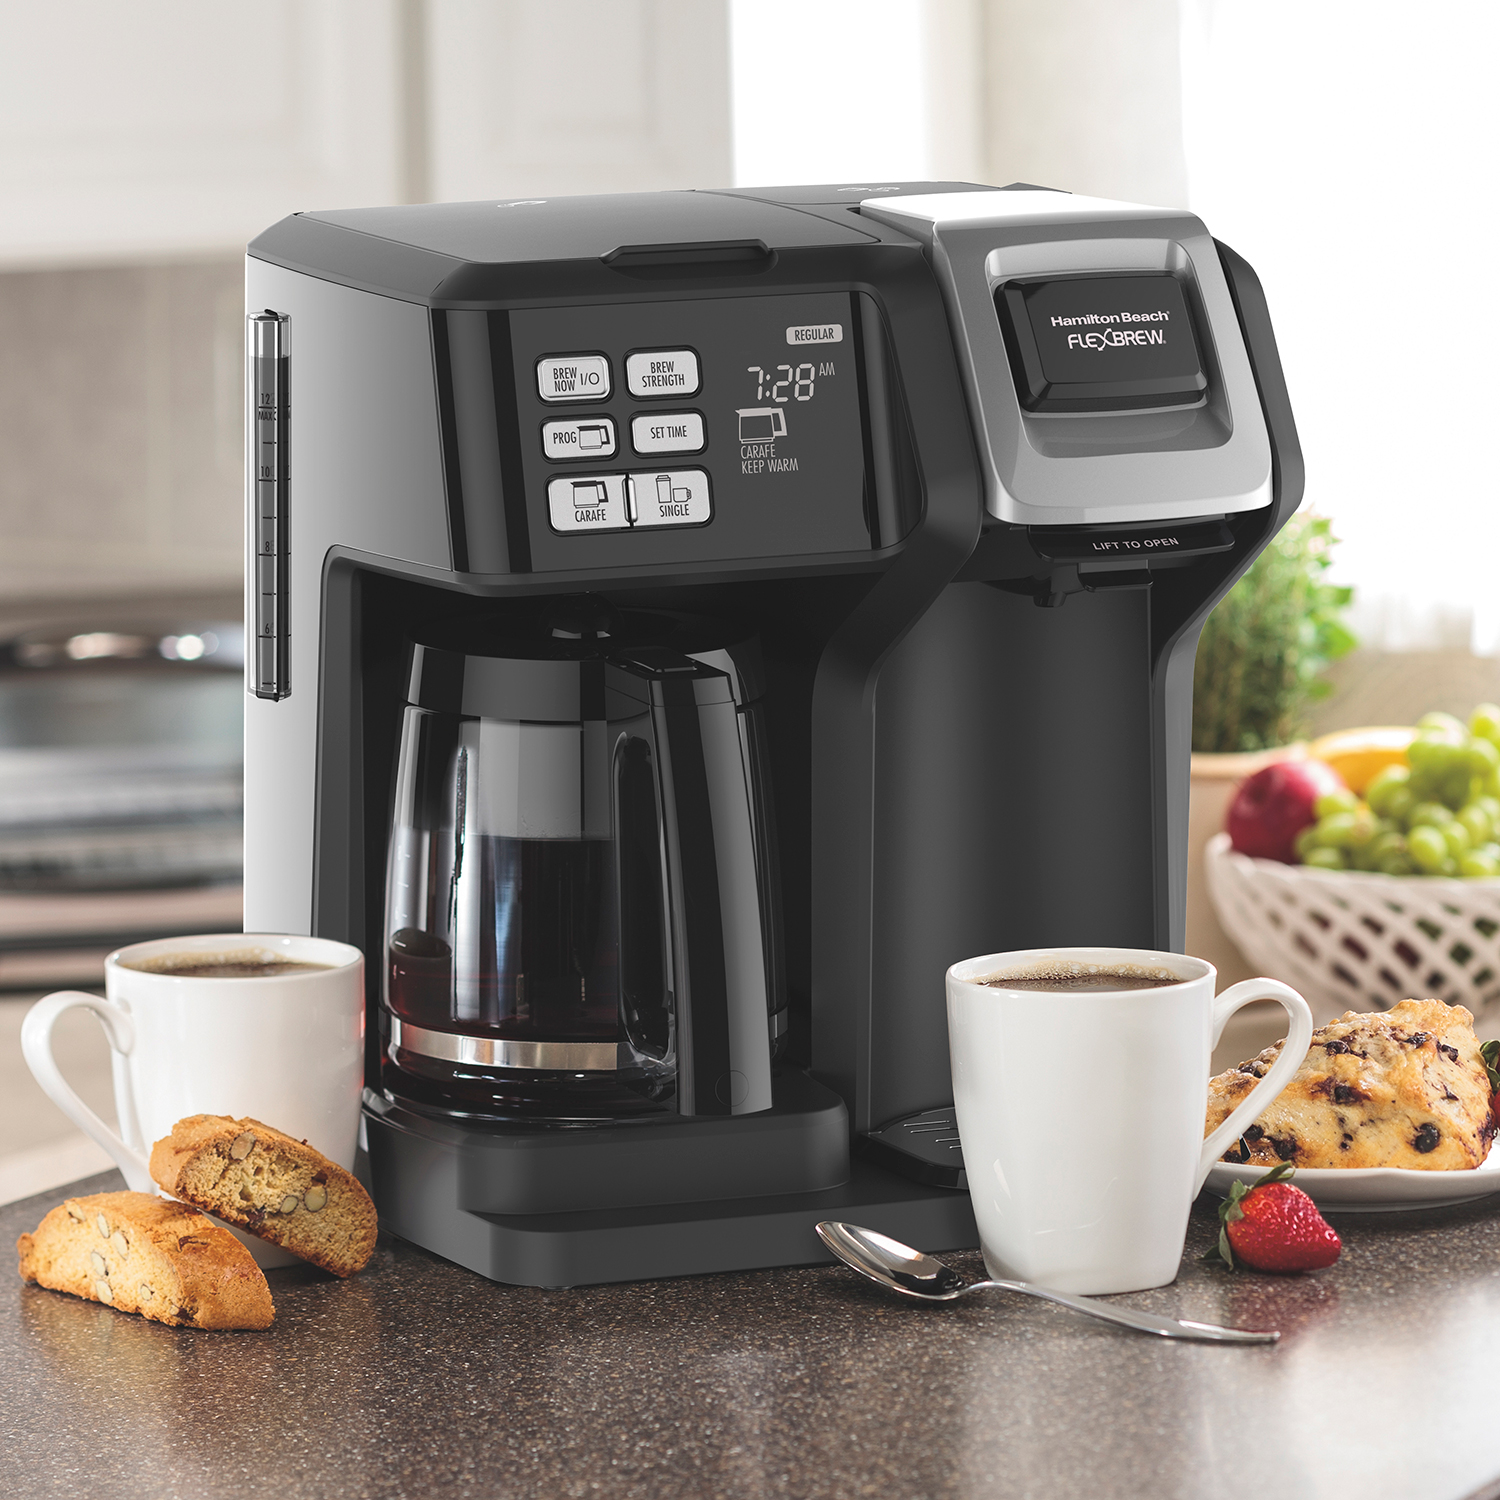 12 Days of Giveaways – Day 2: Hamilton Beach Coffee Maker